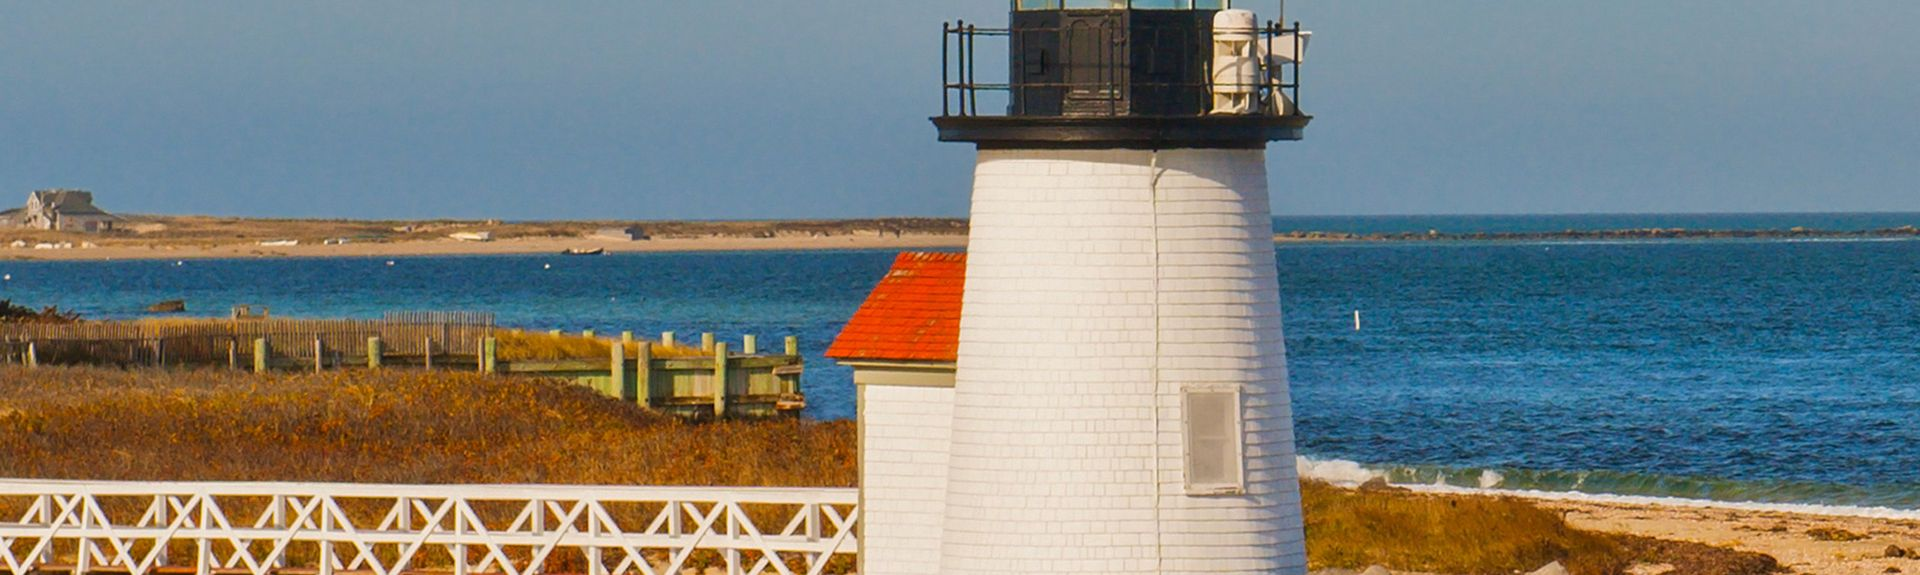 Brant Point, Nantucket, Massachusetts, United States of America